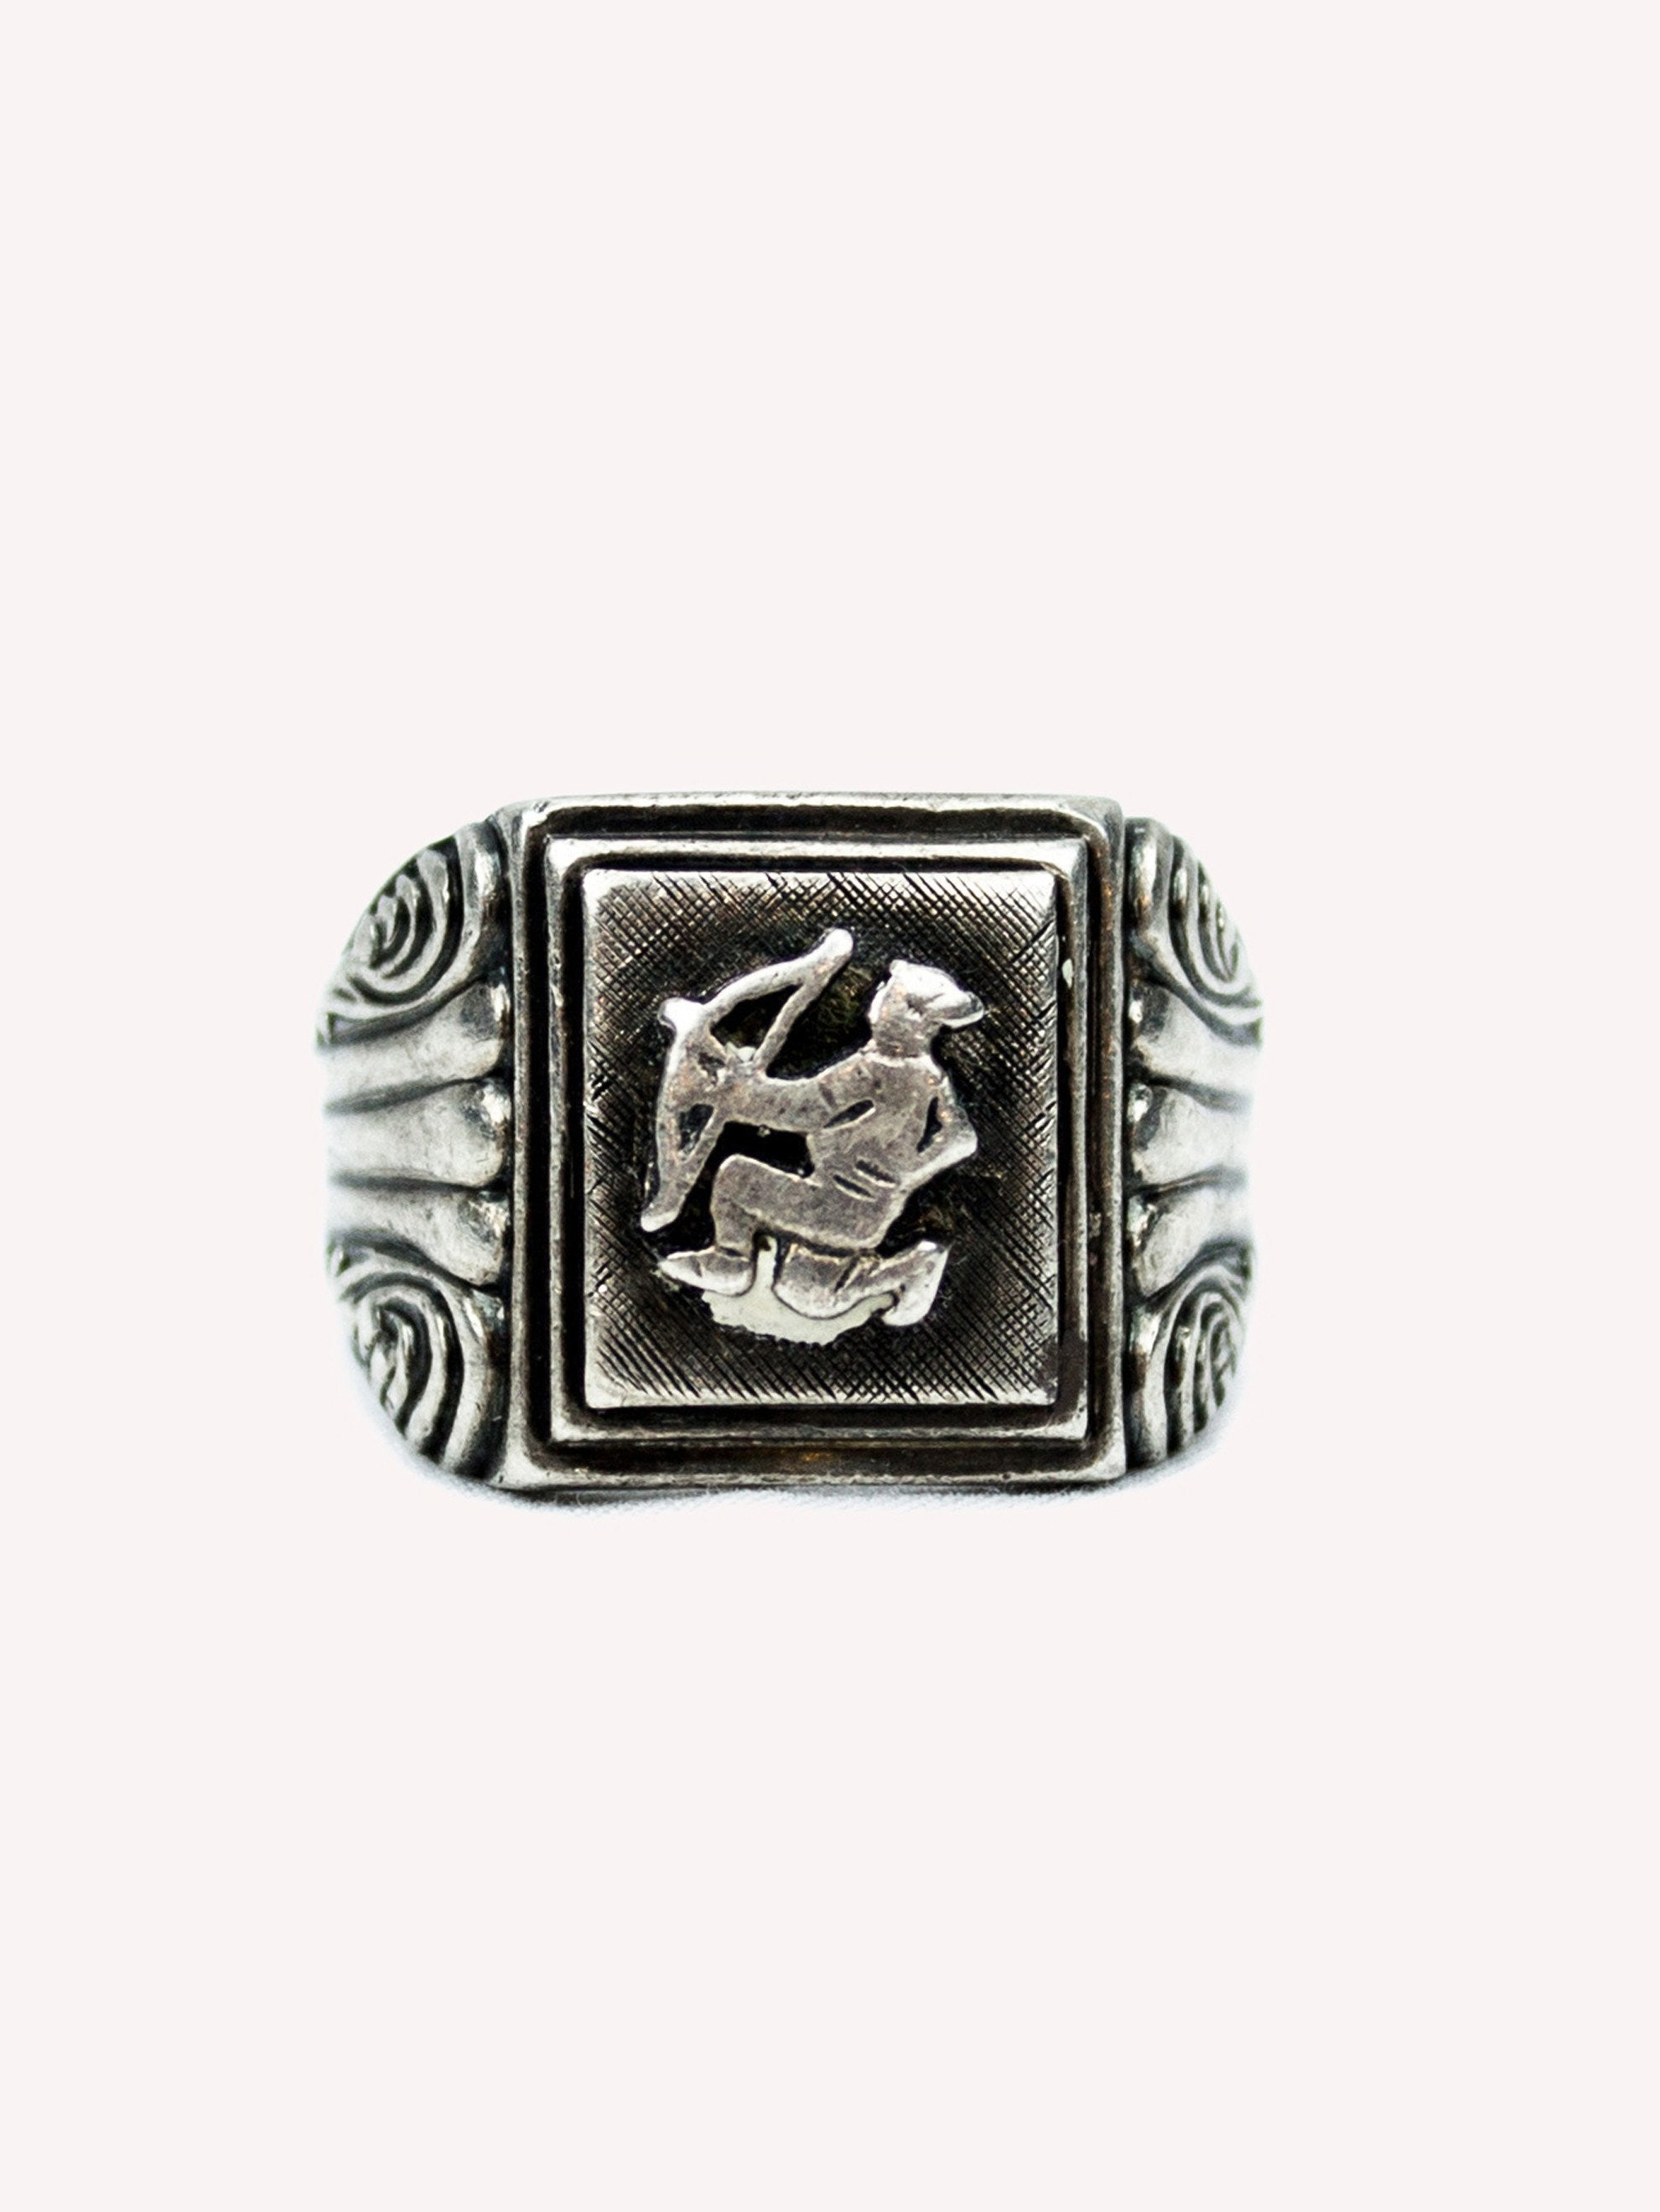 10.25 Vintage 1930's Sterling Silver Archer Ring 1